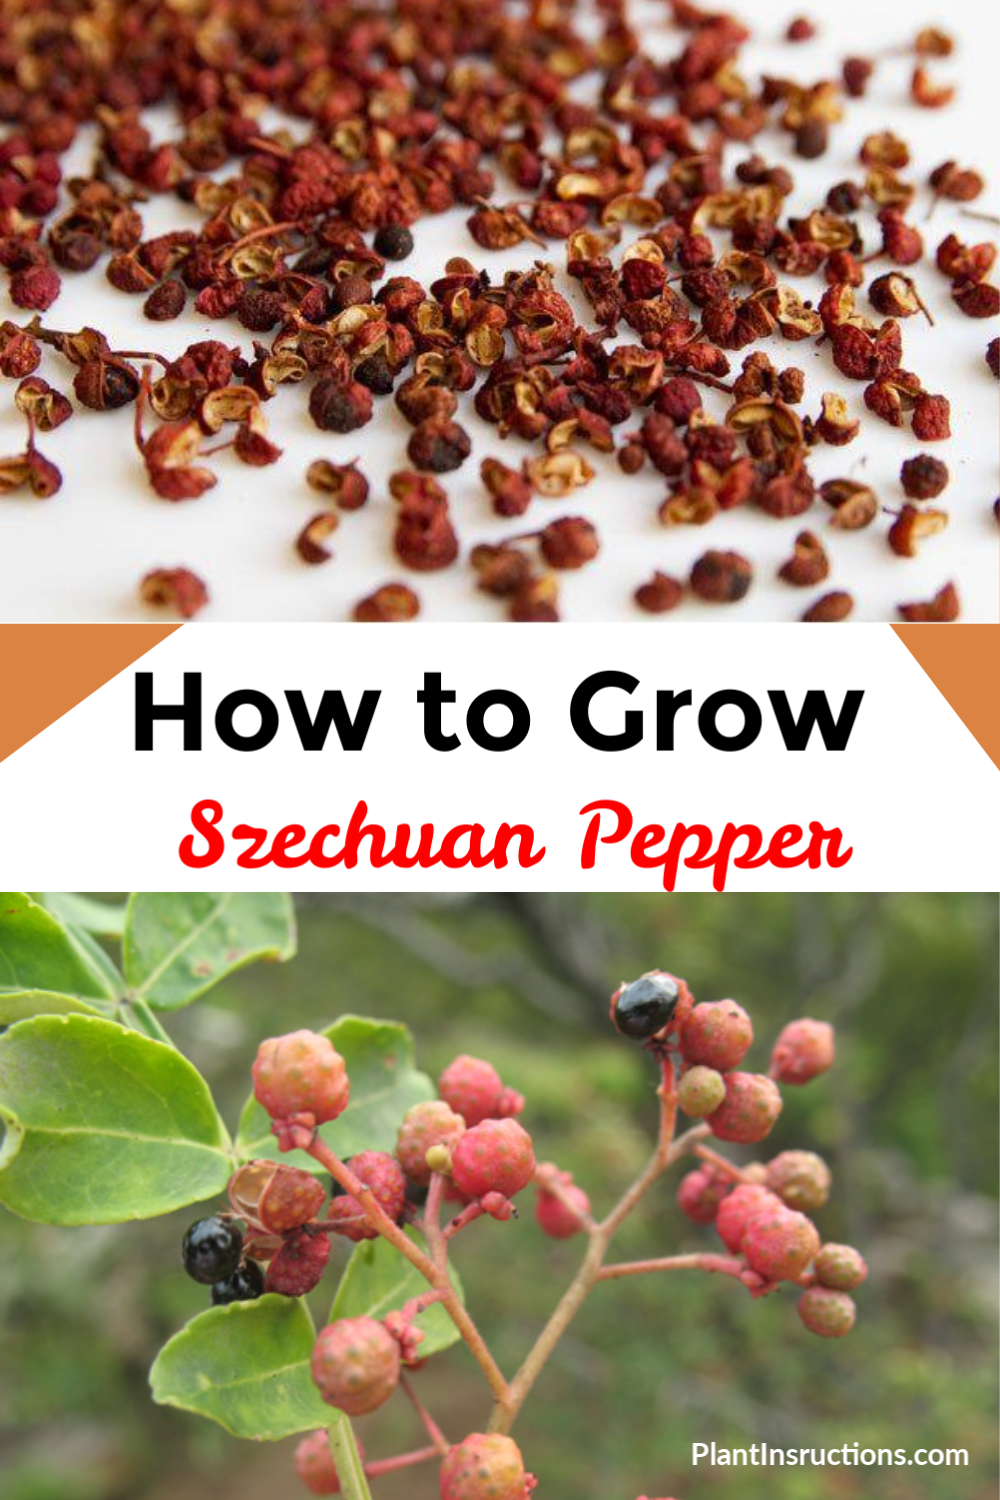 If you live in USDA zones 6 through 9, you can grow Szechuan peppers right in your garden!  #szechuanpeppers #plantinstructions